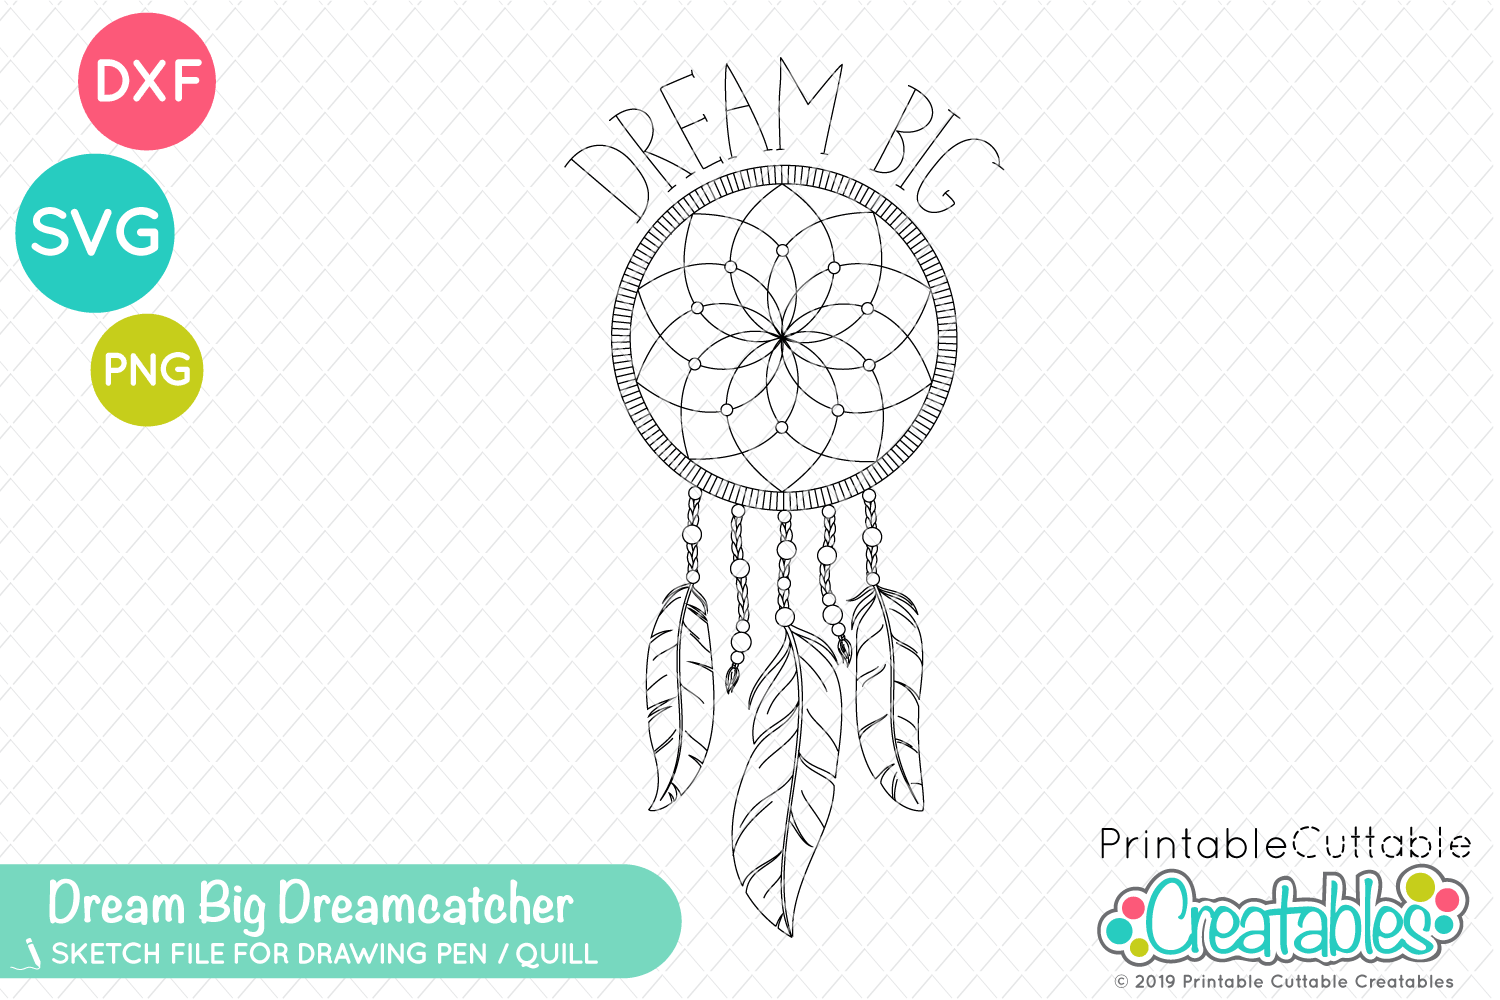 graphic about Dream Catcher Printable called Foil Quill Sketch SVG - Desire Huge Dreamcatcher